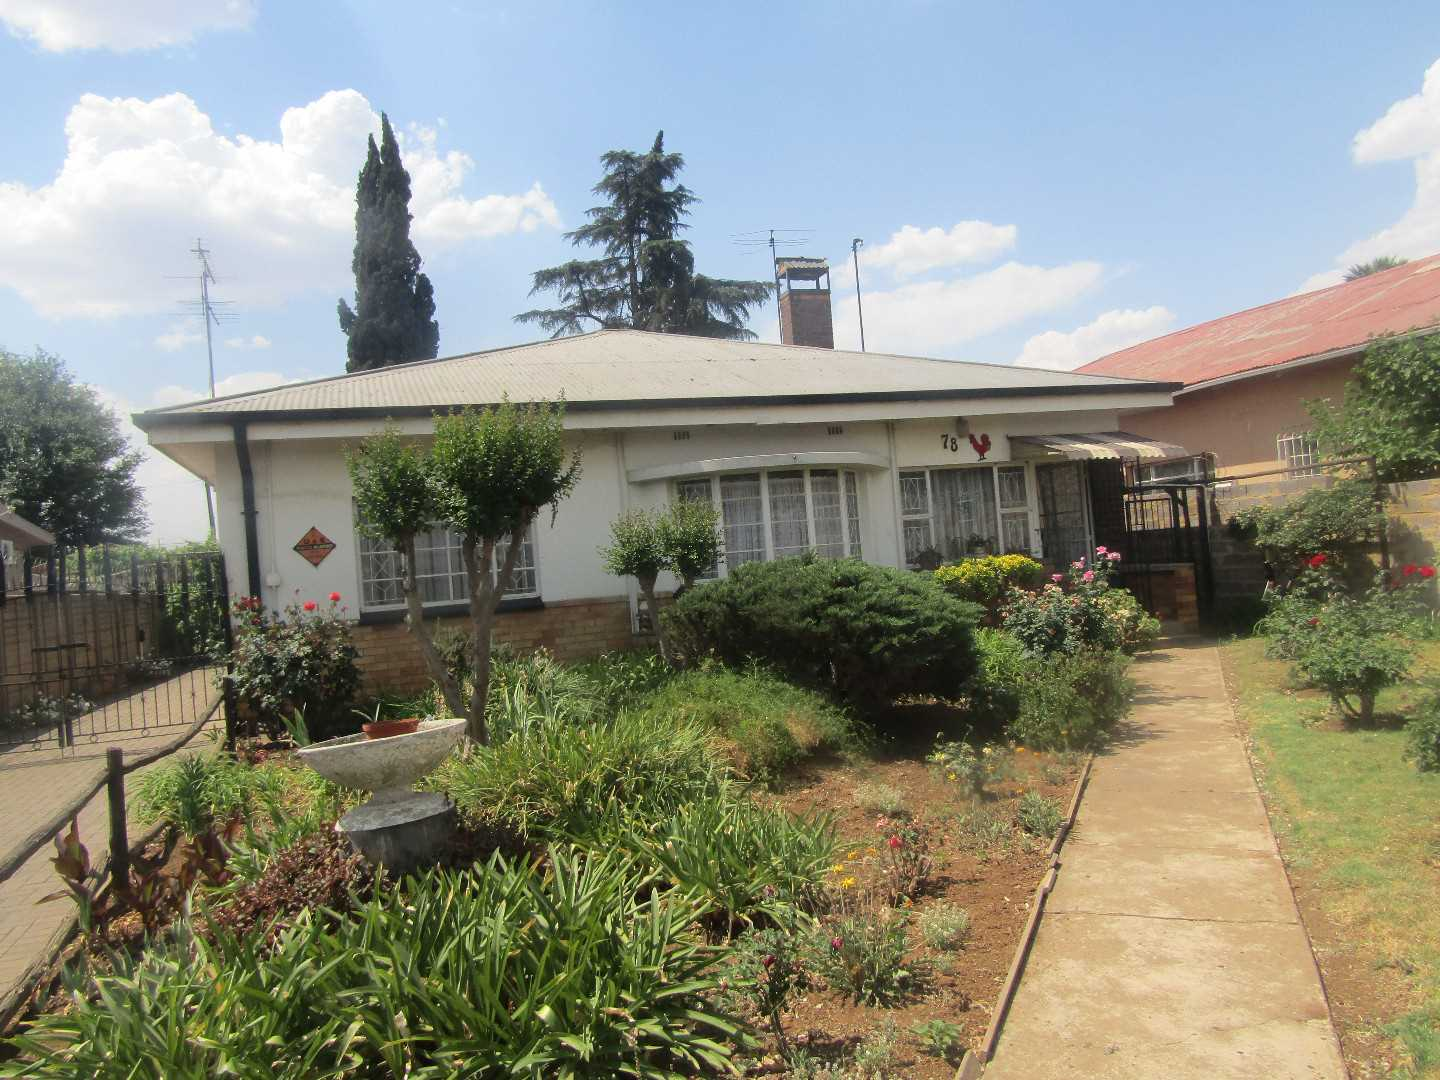 Well maintained property up for grabs